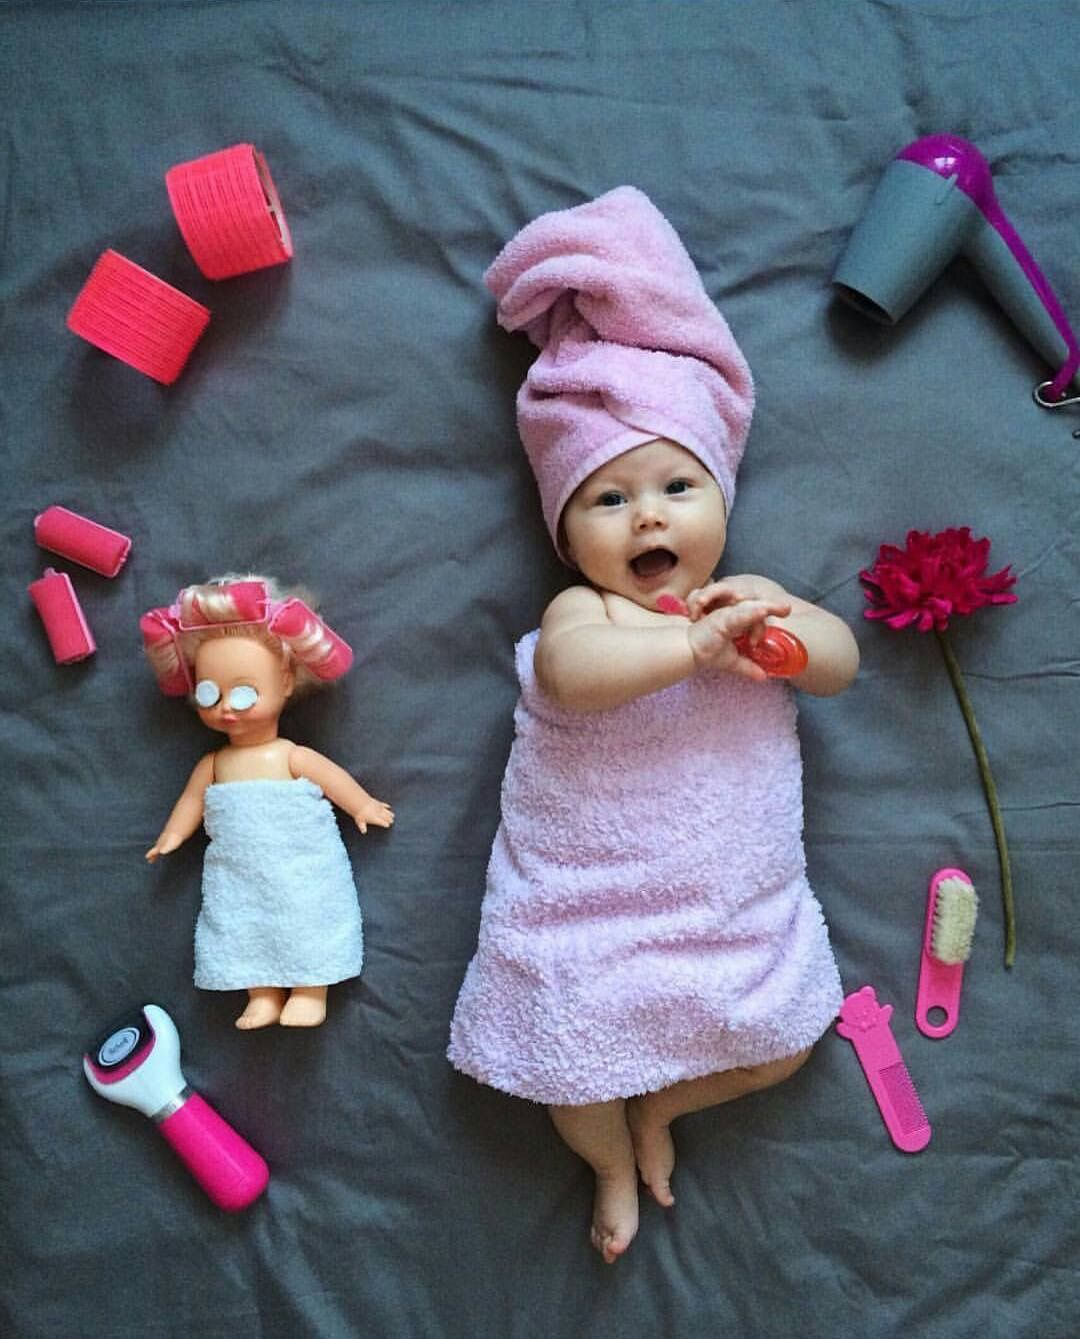 Pin By Tierra Valdez On Baby Pinterest Baby Fotoshooting Ideen